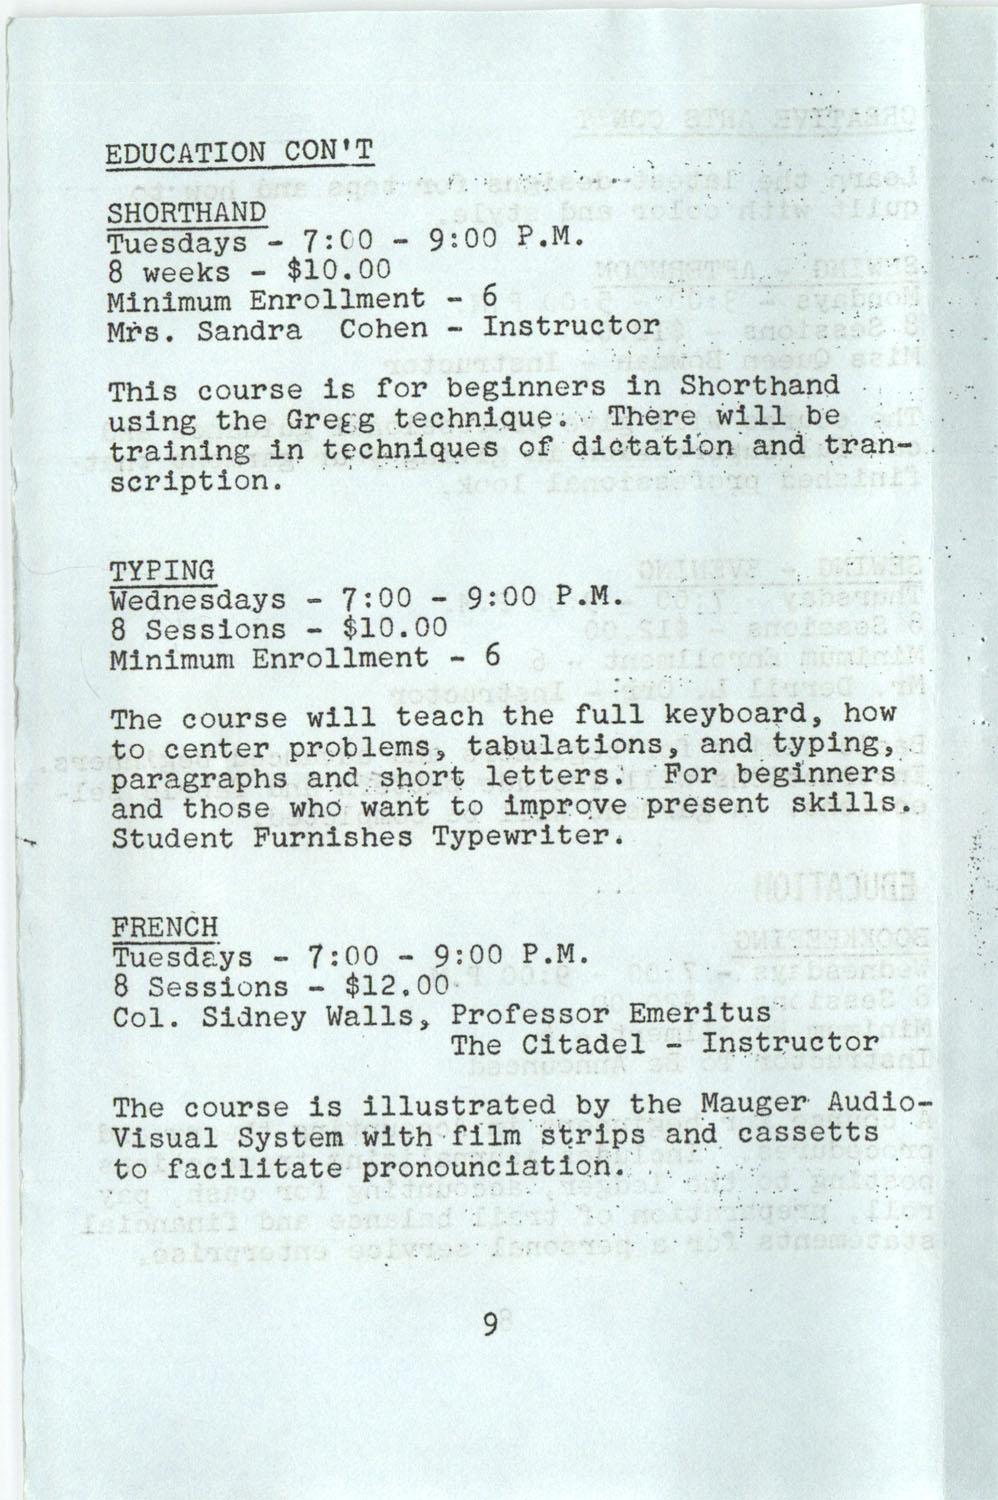 YWCA Spring 1975 Schedule, Page 9